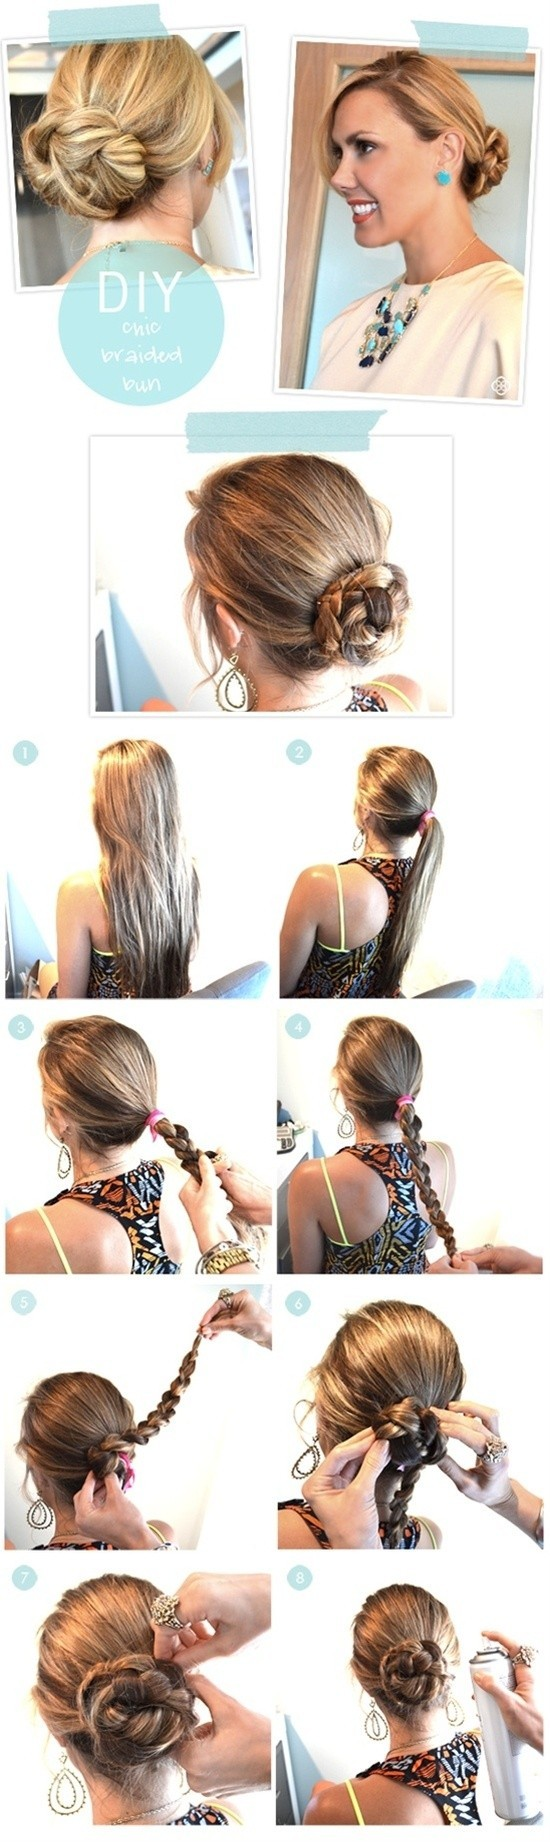 Astonishing Step By Step Hairstyles For Long Hair Long Hairstyles Ideas Short Hairstyles For Black Women Fulllsitofus